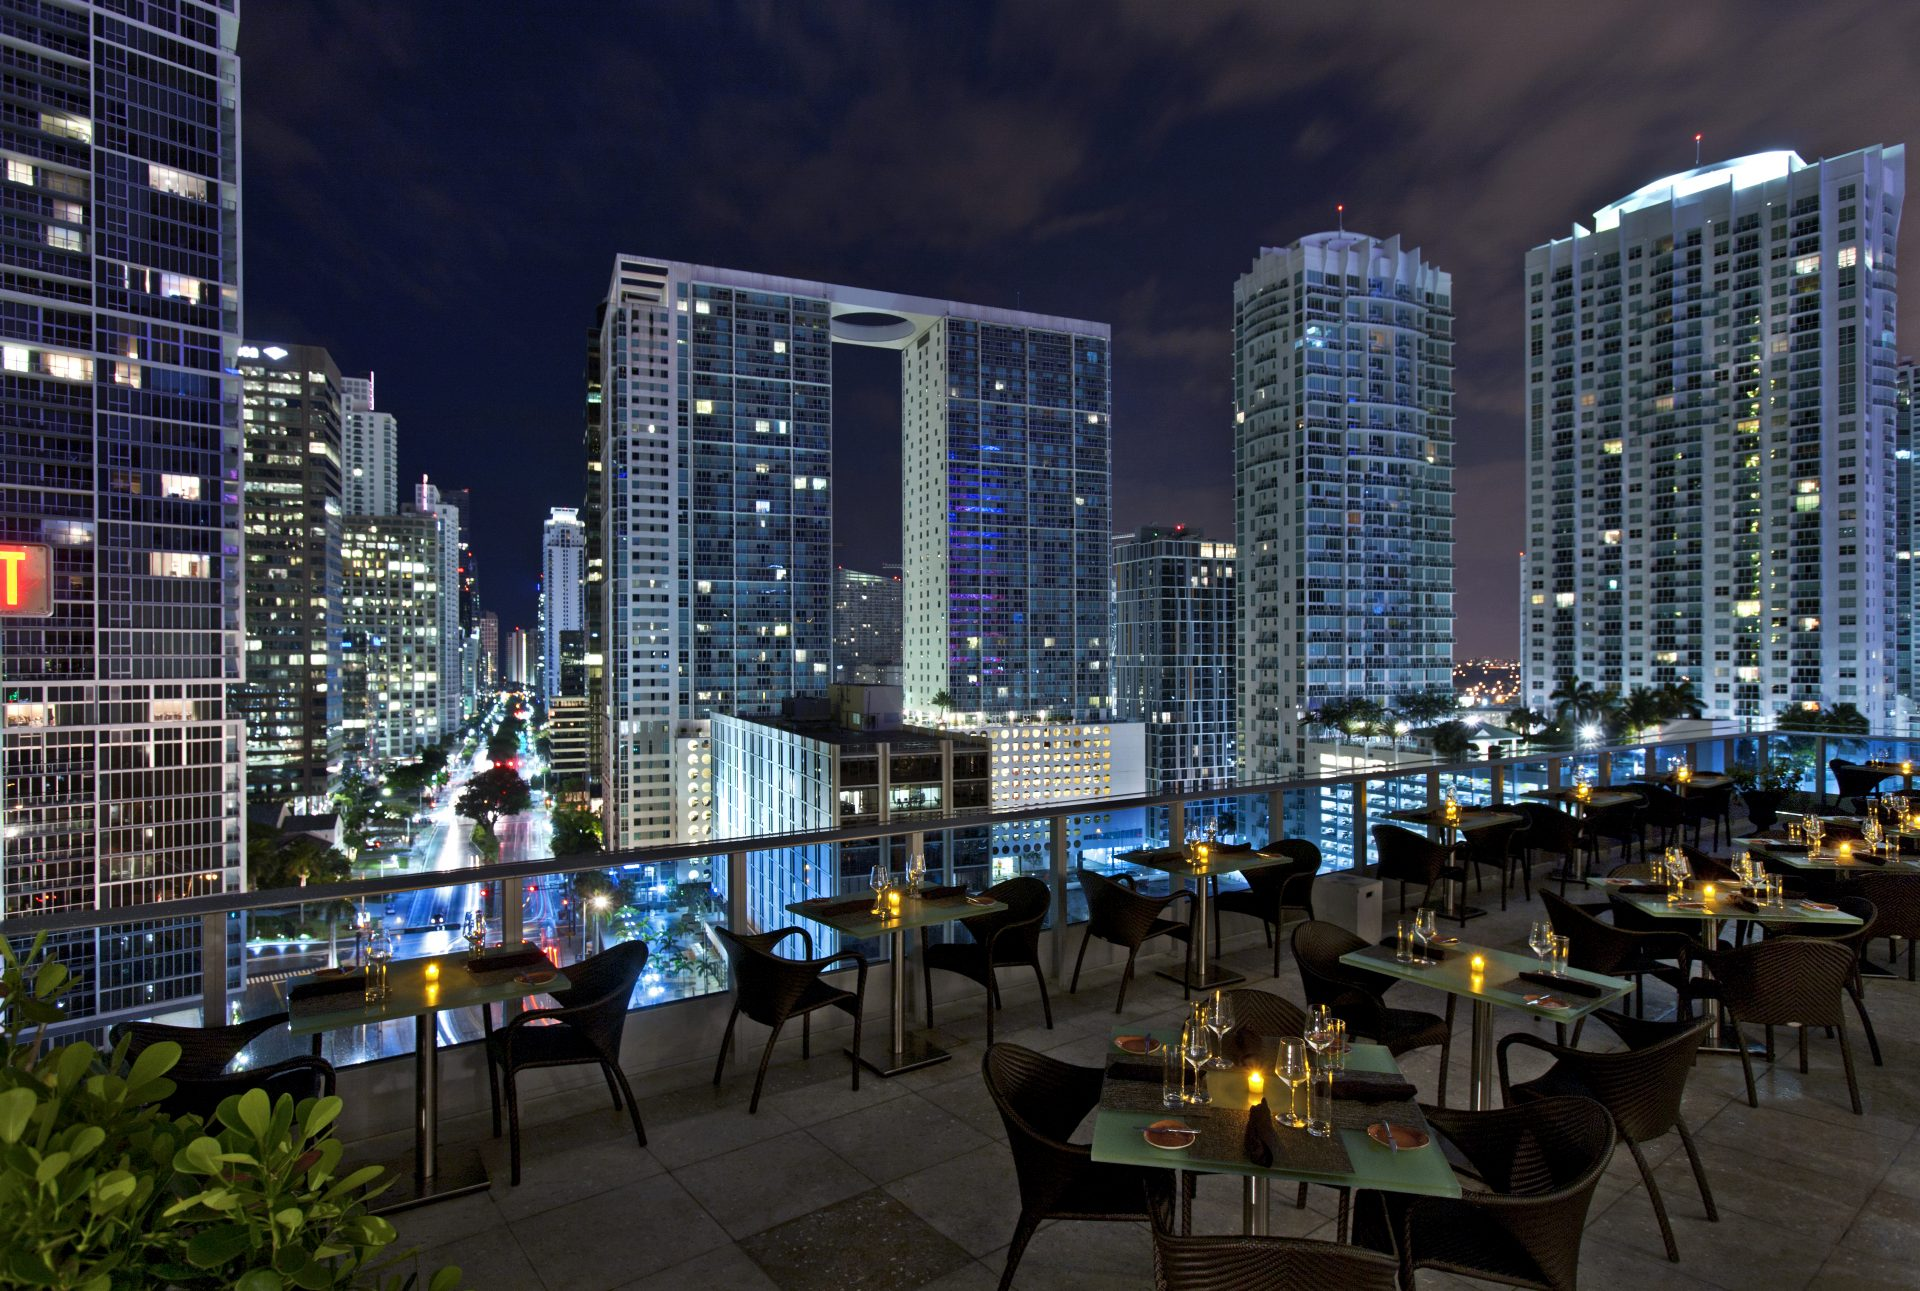 View of city skyline from rooftop restaurant of luxury hotel managed by hotel asset management services firm, hotelAVE